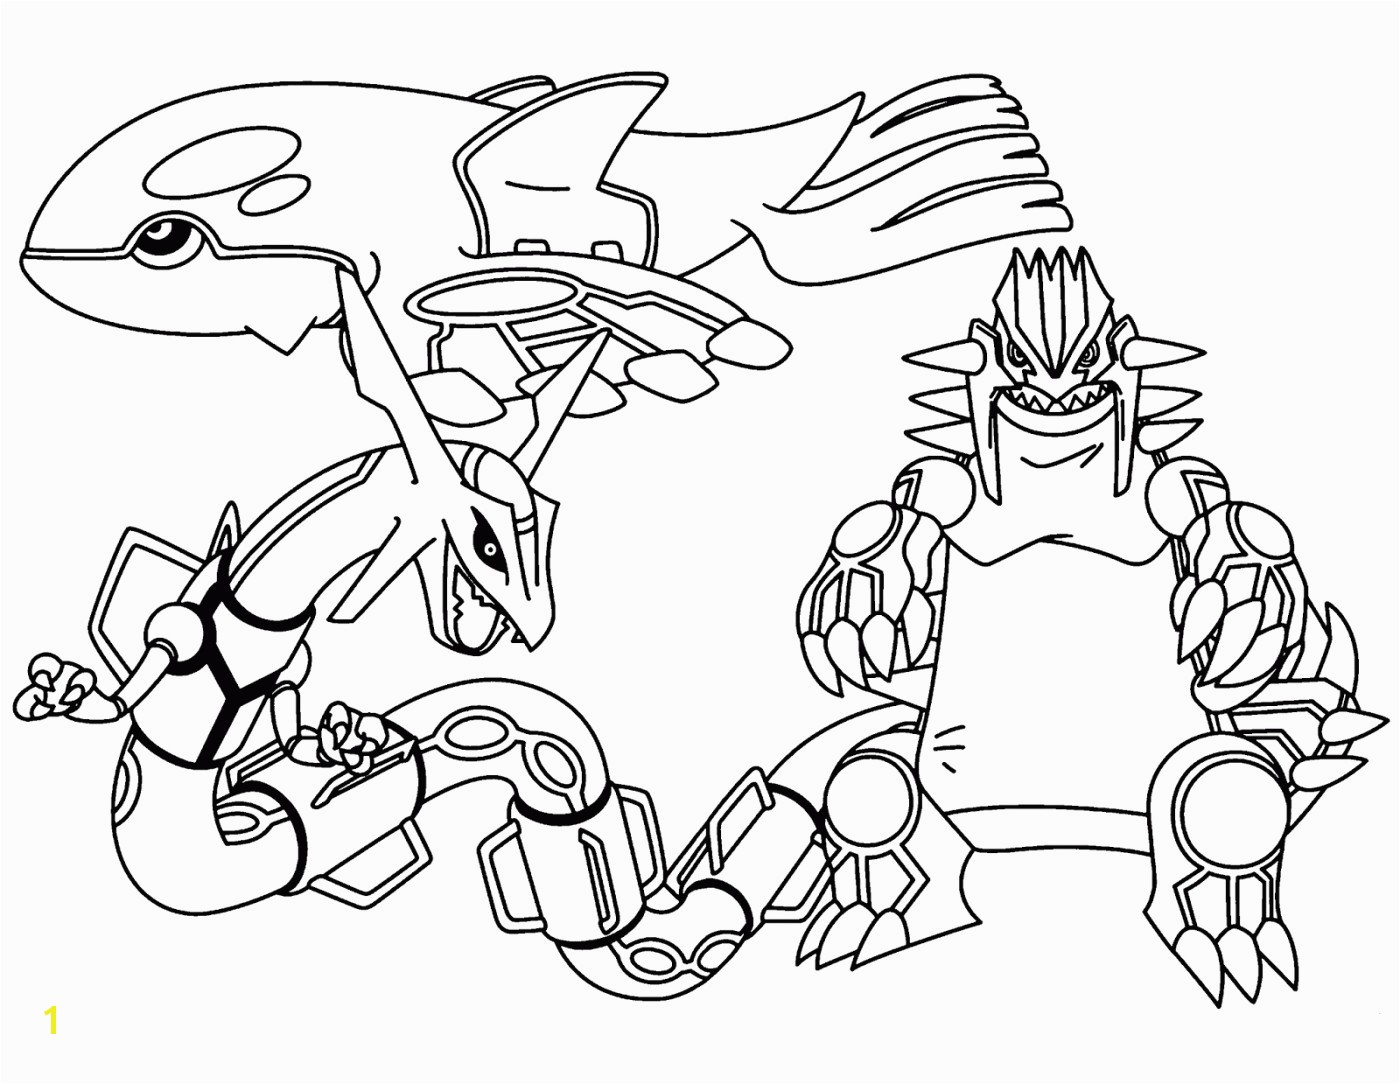 Pokemon Mega Rayquaza Coloring Pages Part 144 You Can Print Images that Can Be Default for Coloring with